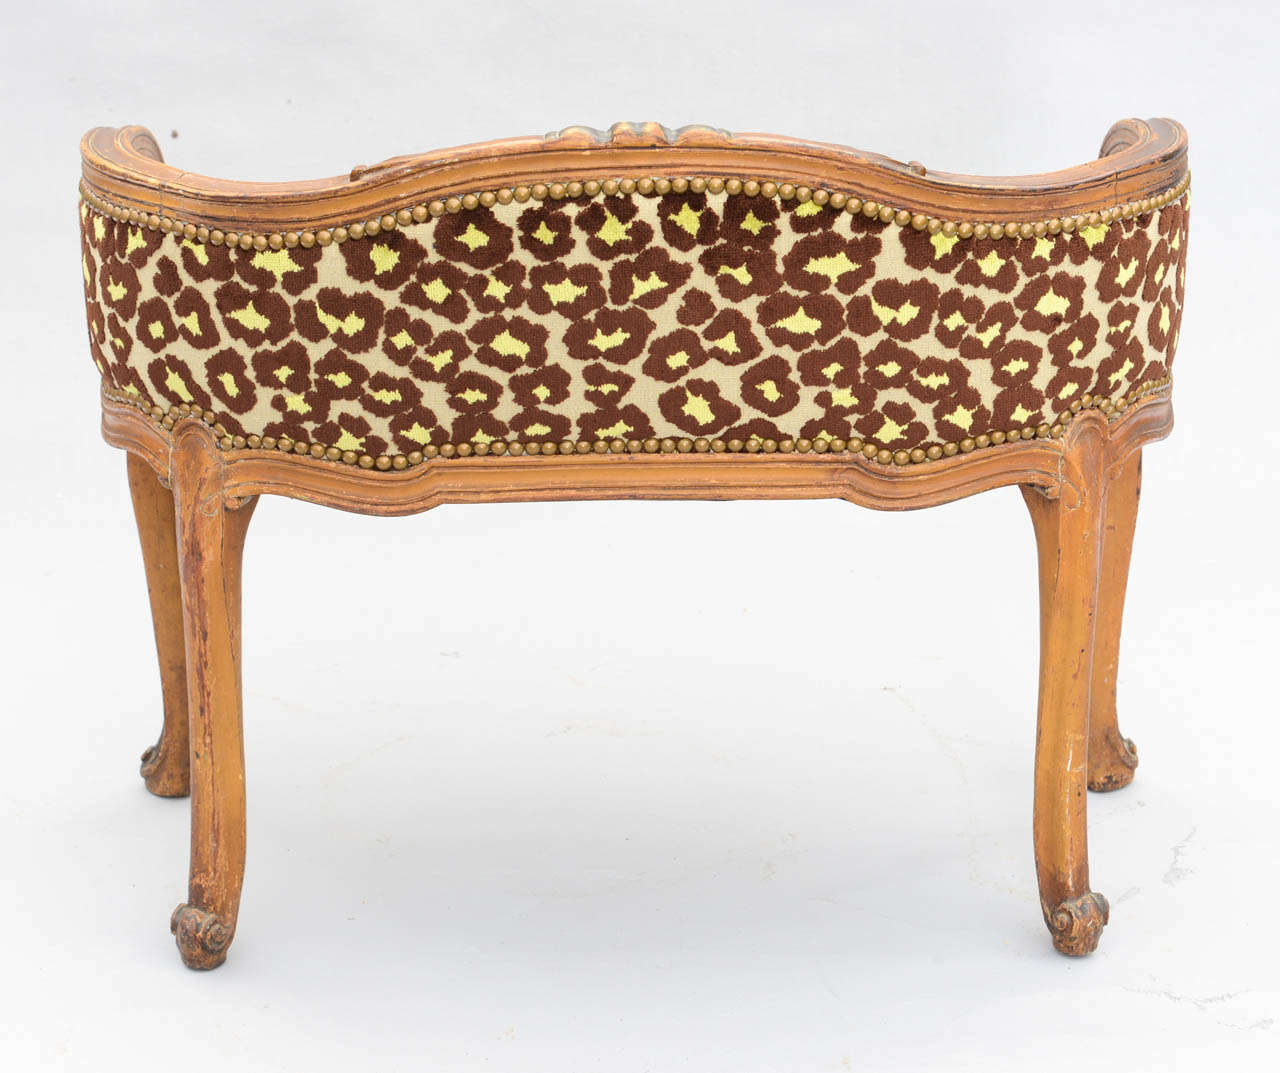 Vanity Bench For Sale Upholstered Louis Xv Style Vanity Bench For Sale At 1stdibs